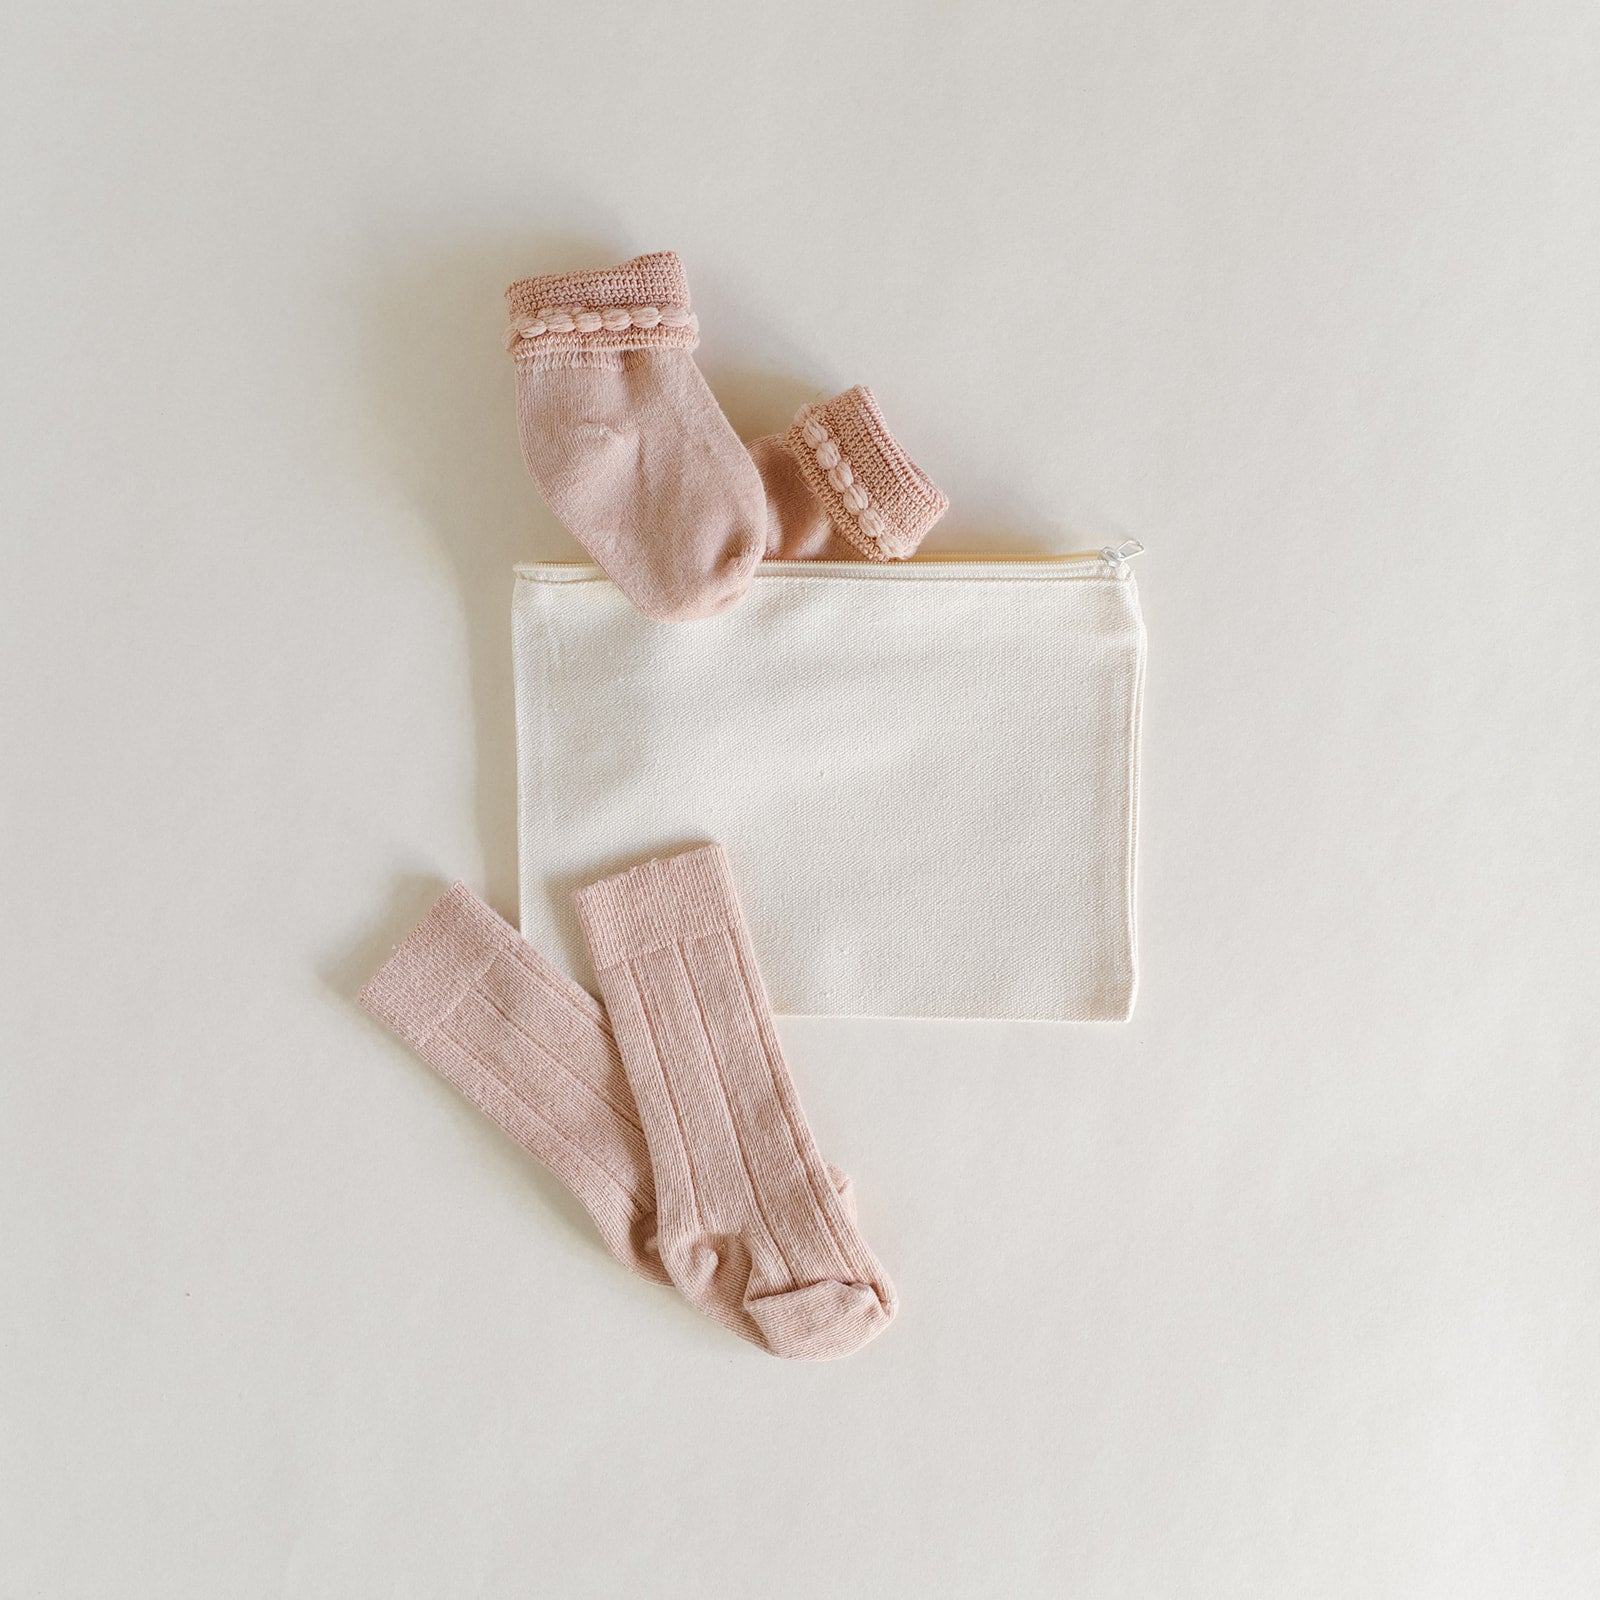 Rose Quartz Sock Gift Set - Tortoise & the Hare Clothing